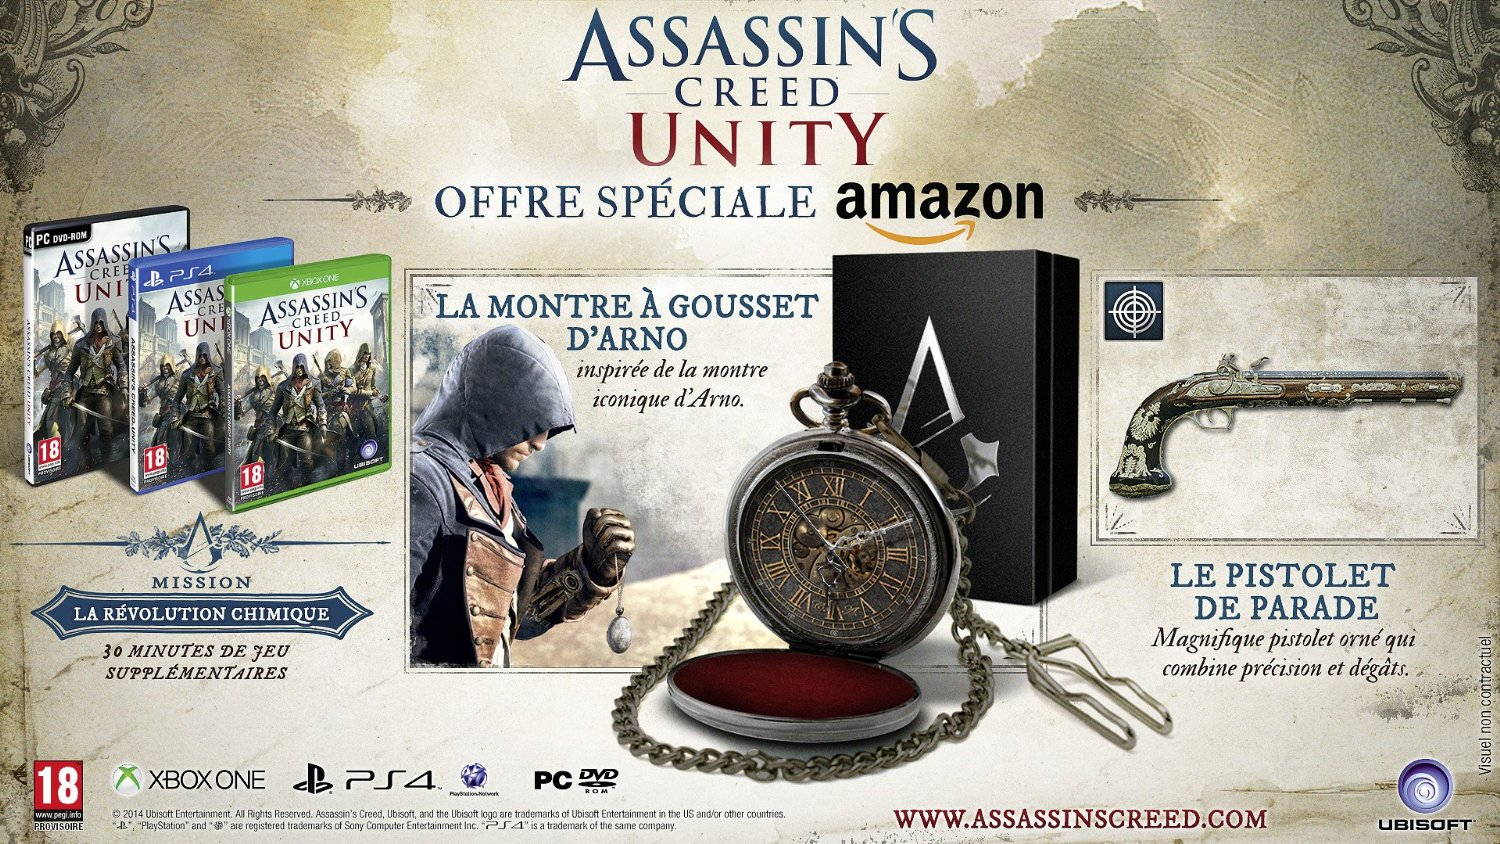 Assassin s creed unity la montre a gousset edition amazon fr